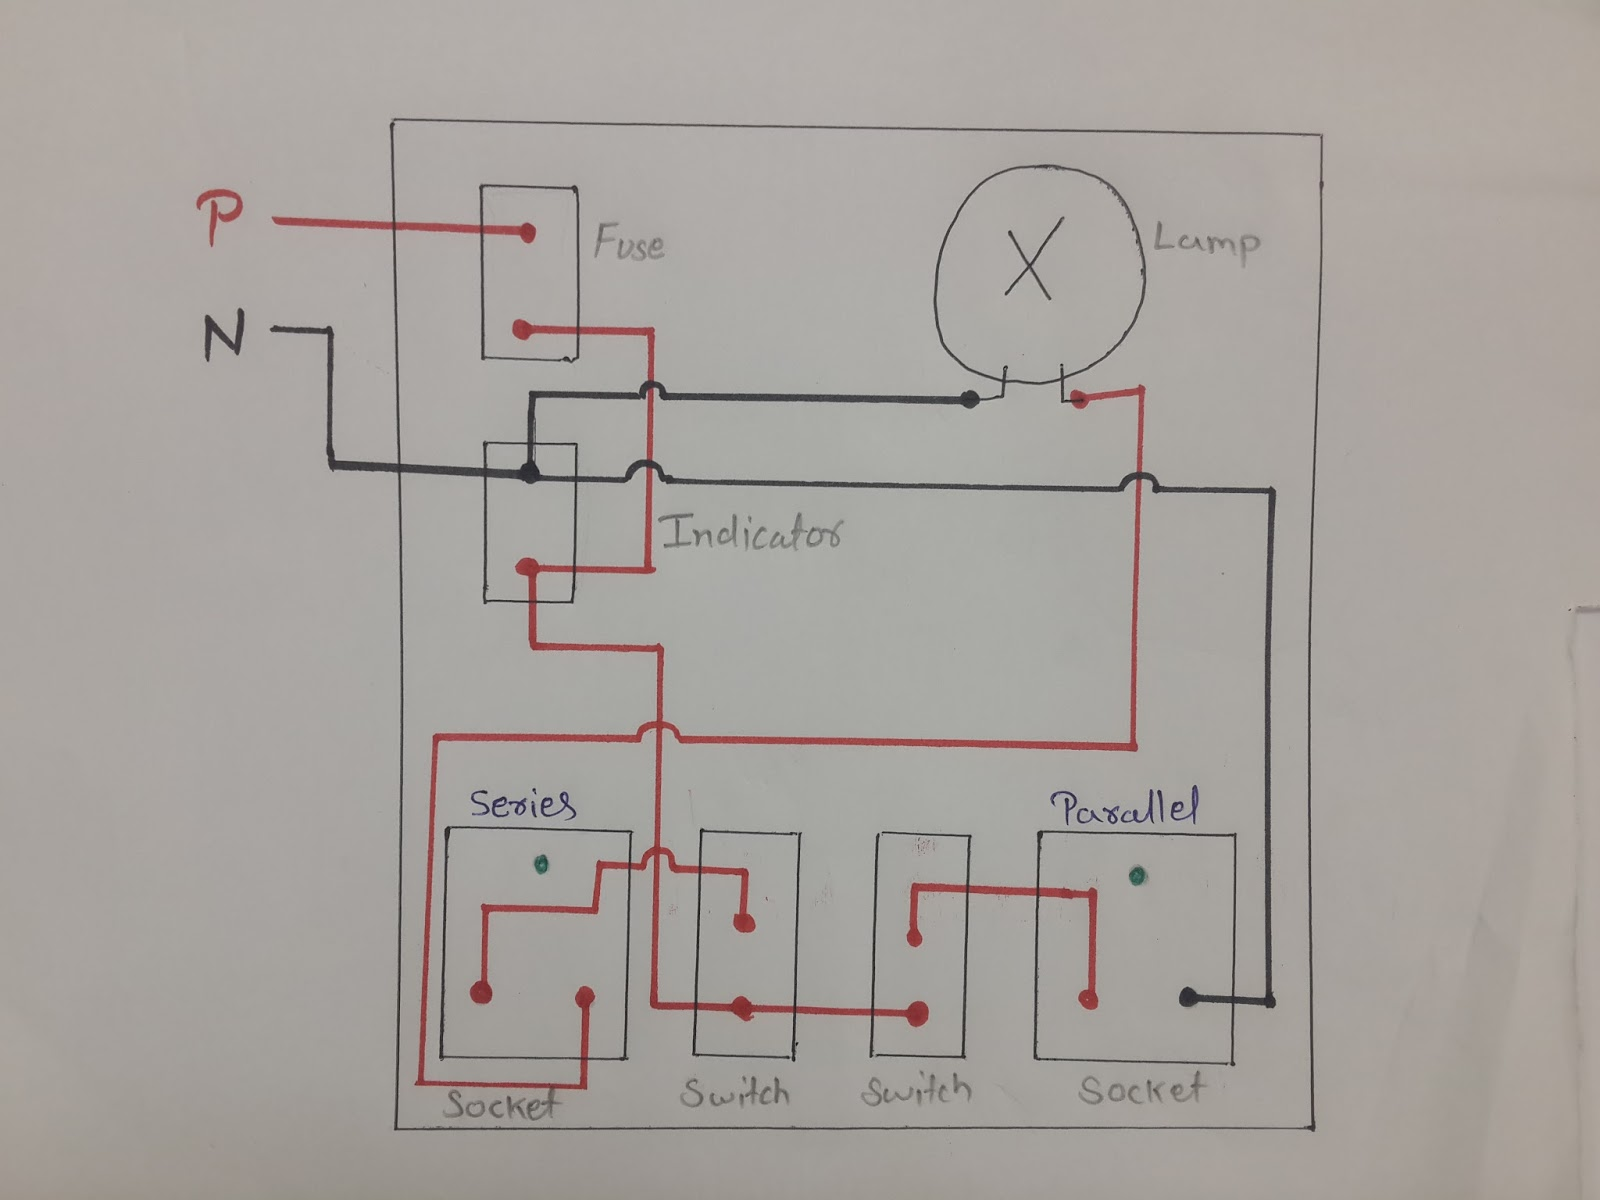 medium resolution of circuit diagram of series test lamp wiring diagram used deepakkumar yadav how series parallel electrical testing